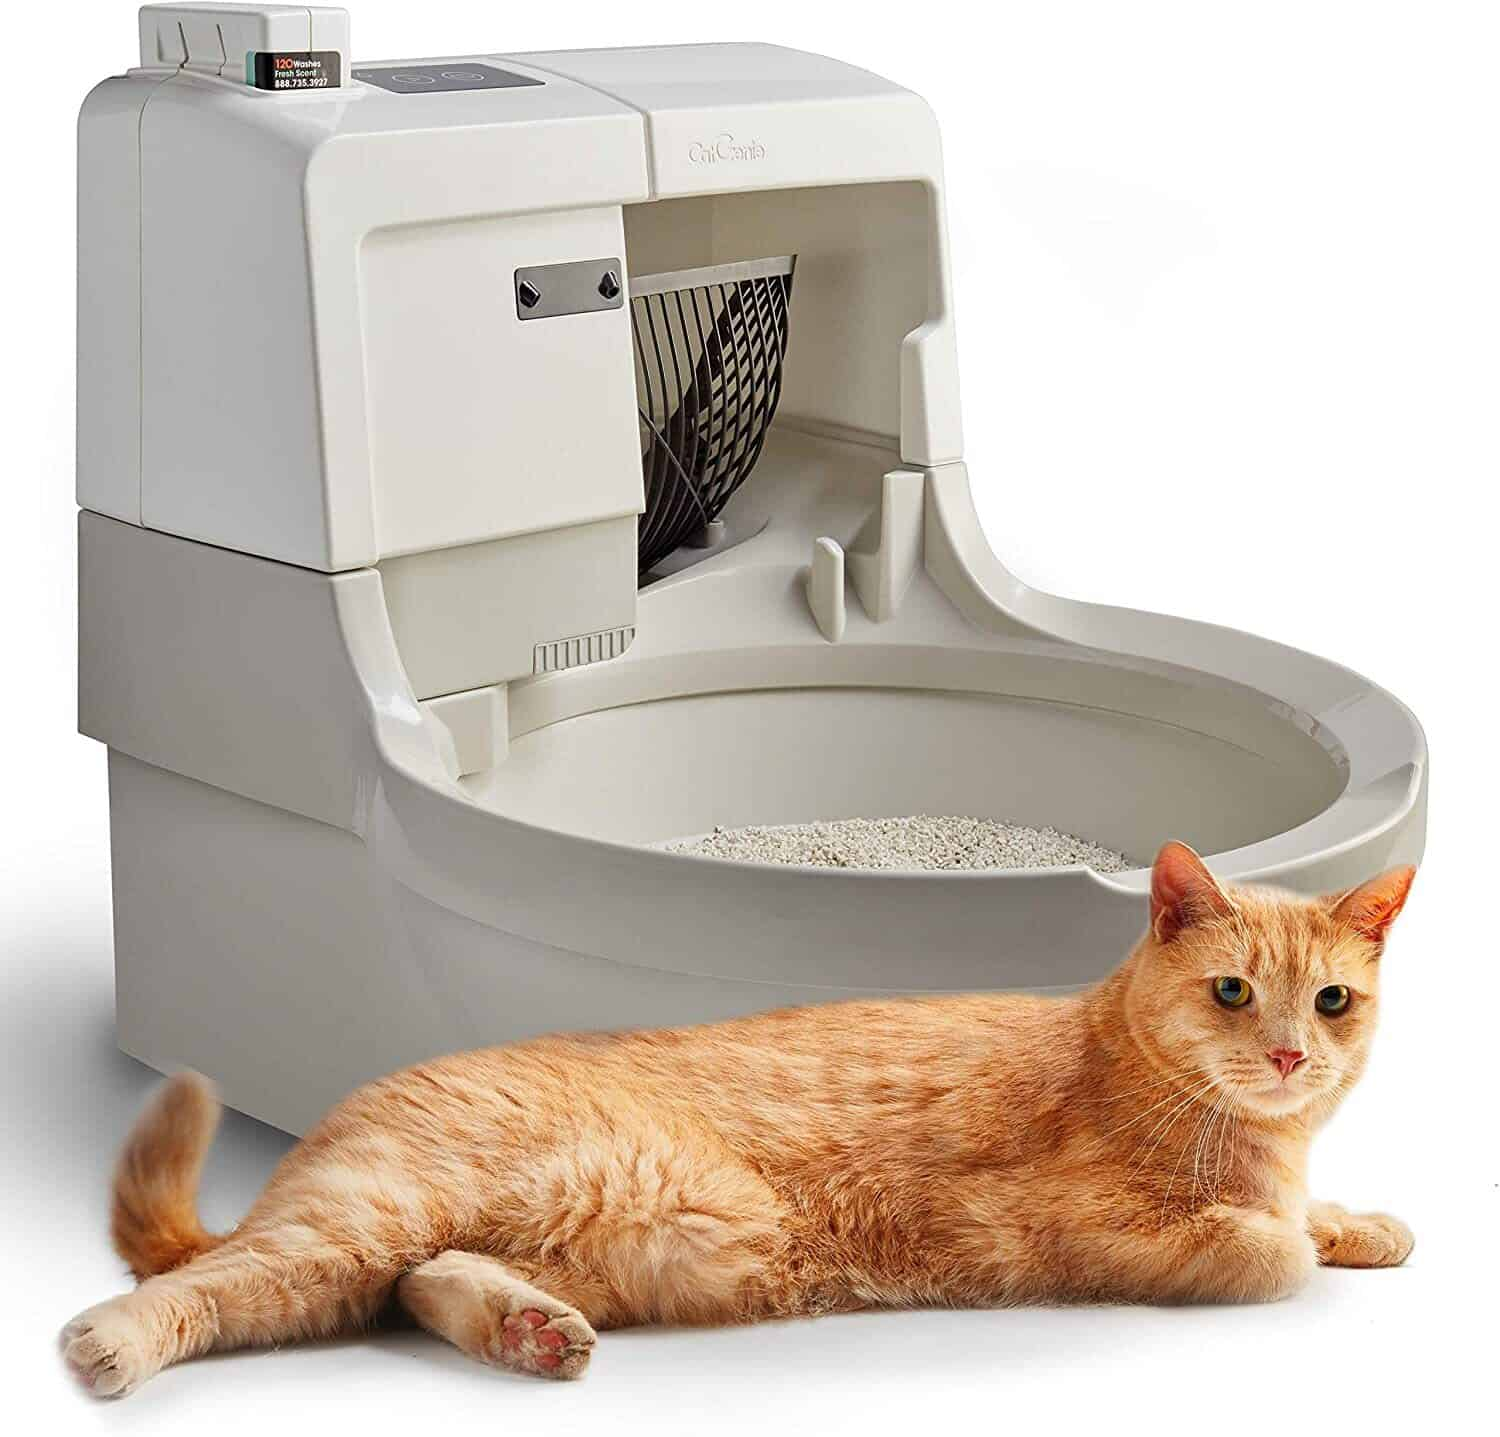 Top 7 Best Automatic Litter Box For Self Cleaning [2021 Update] 3